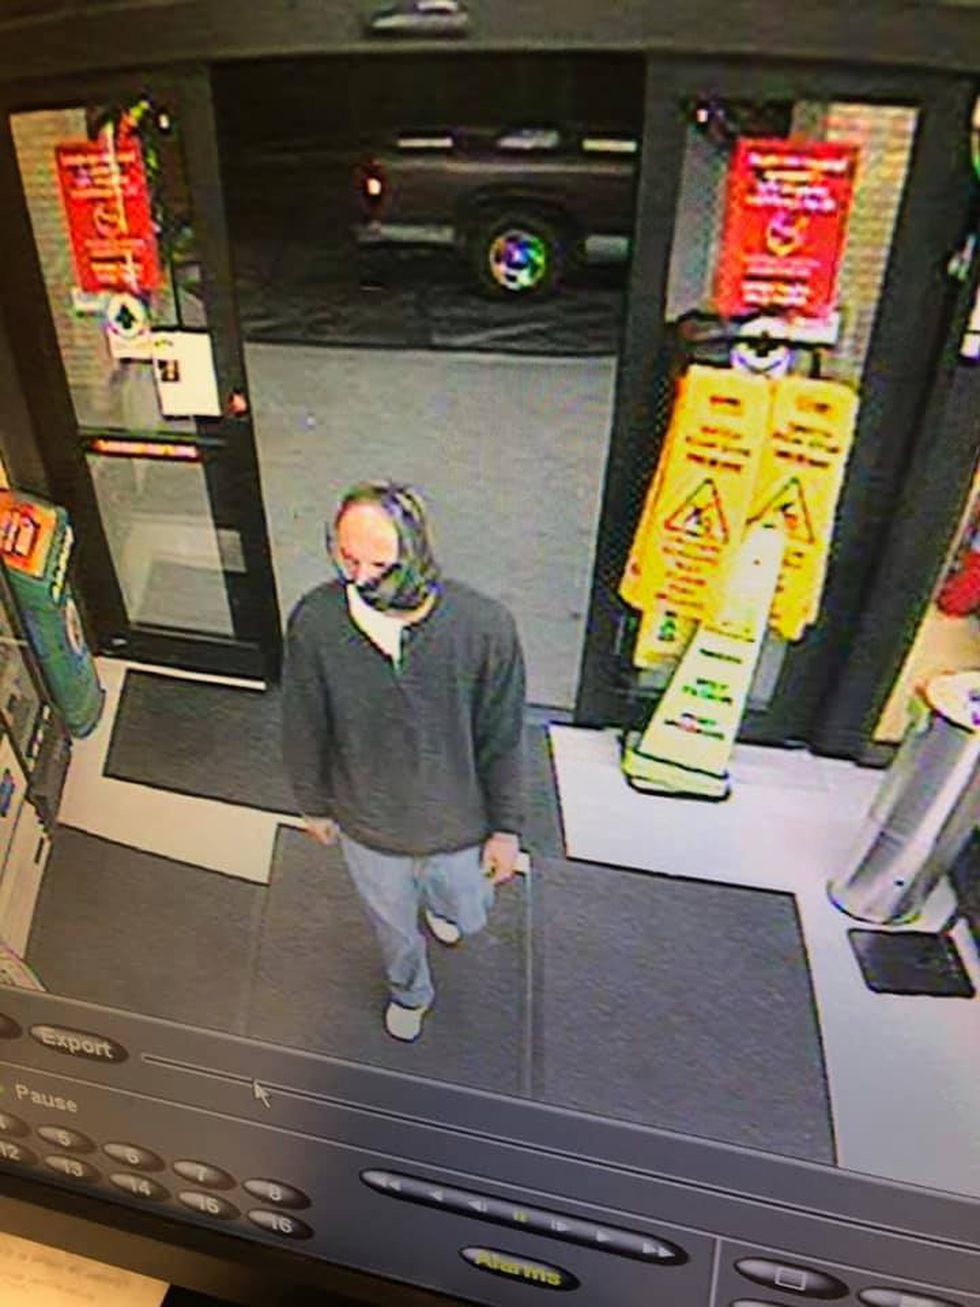 pon arrival at the store, deputies determined that a white man with a camouflage mask, gray...